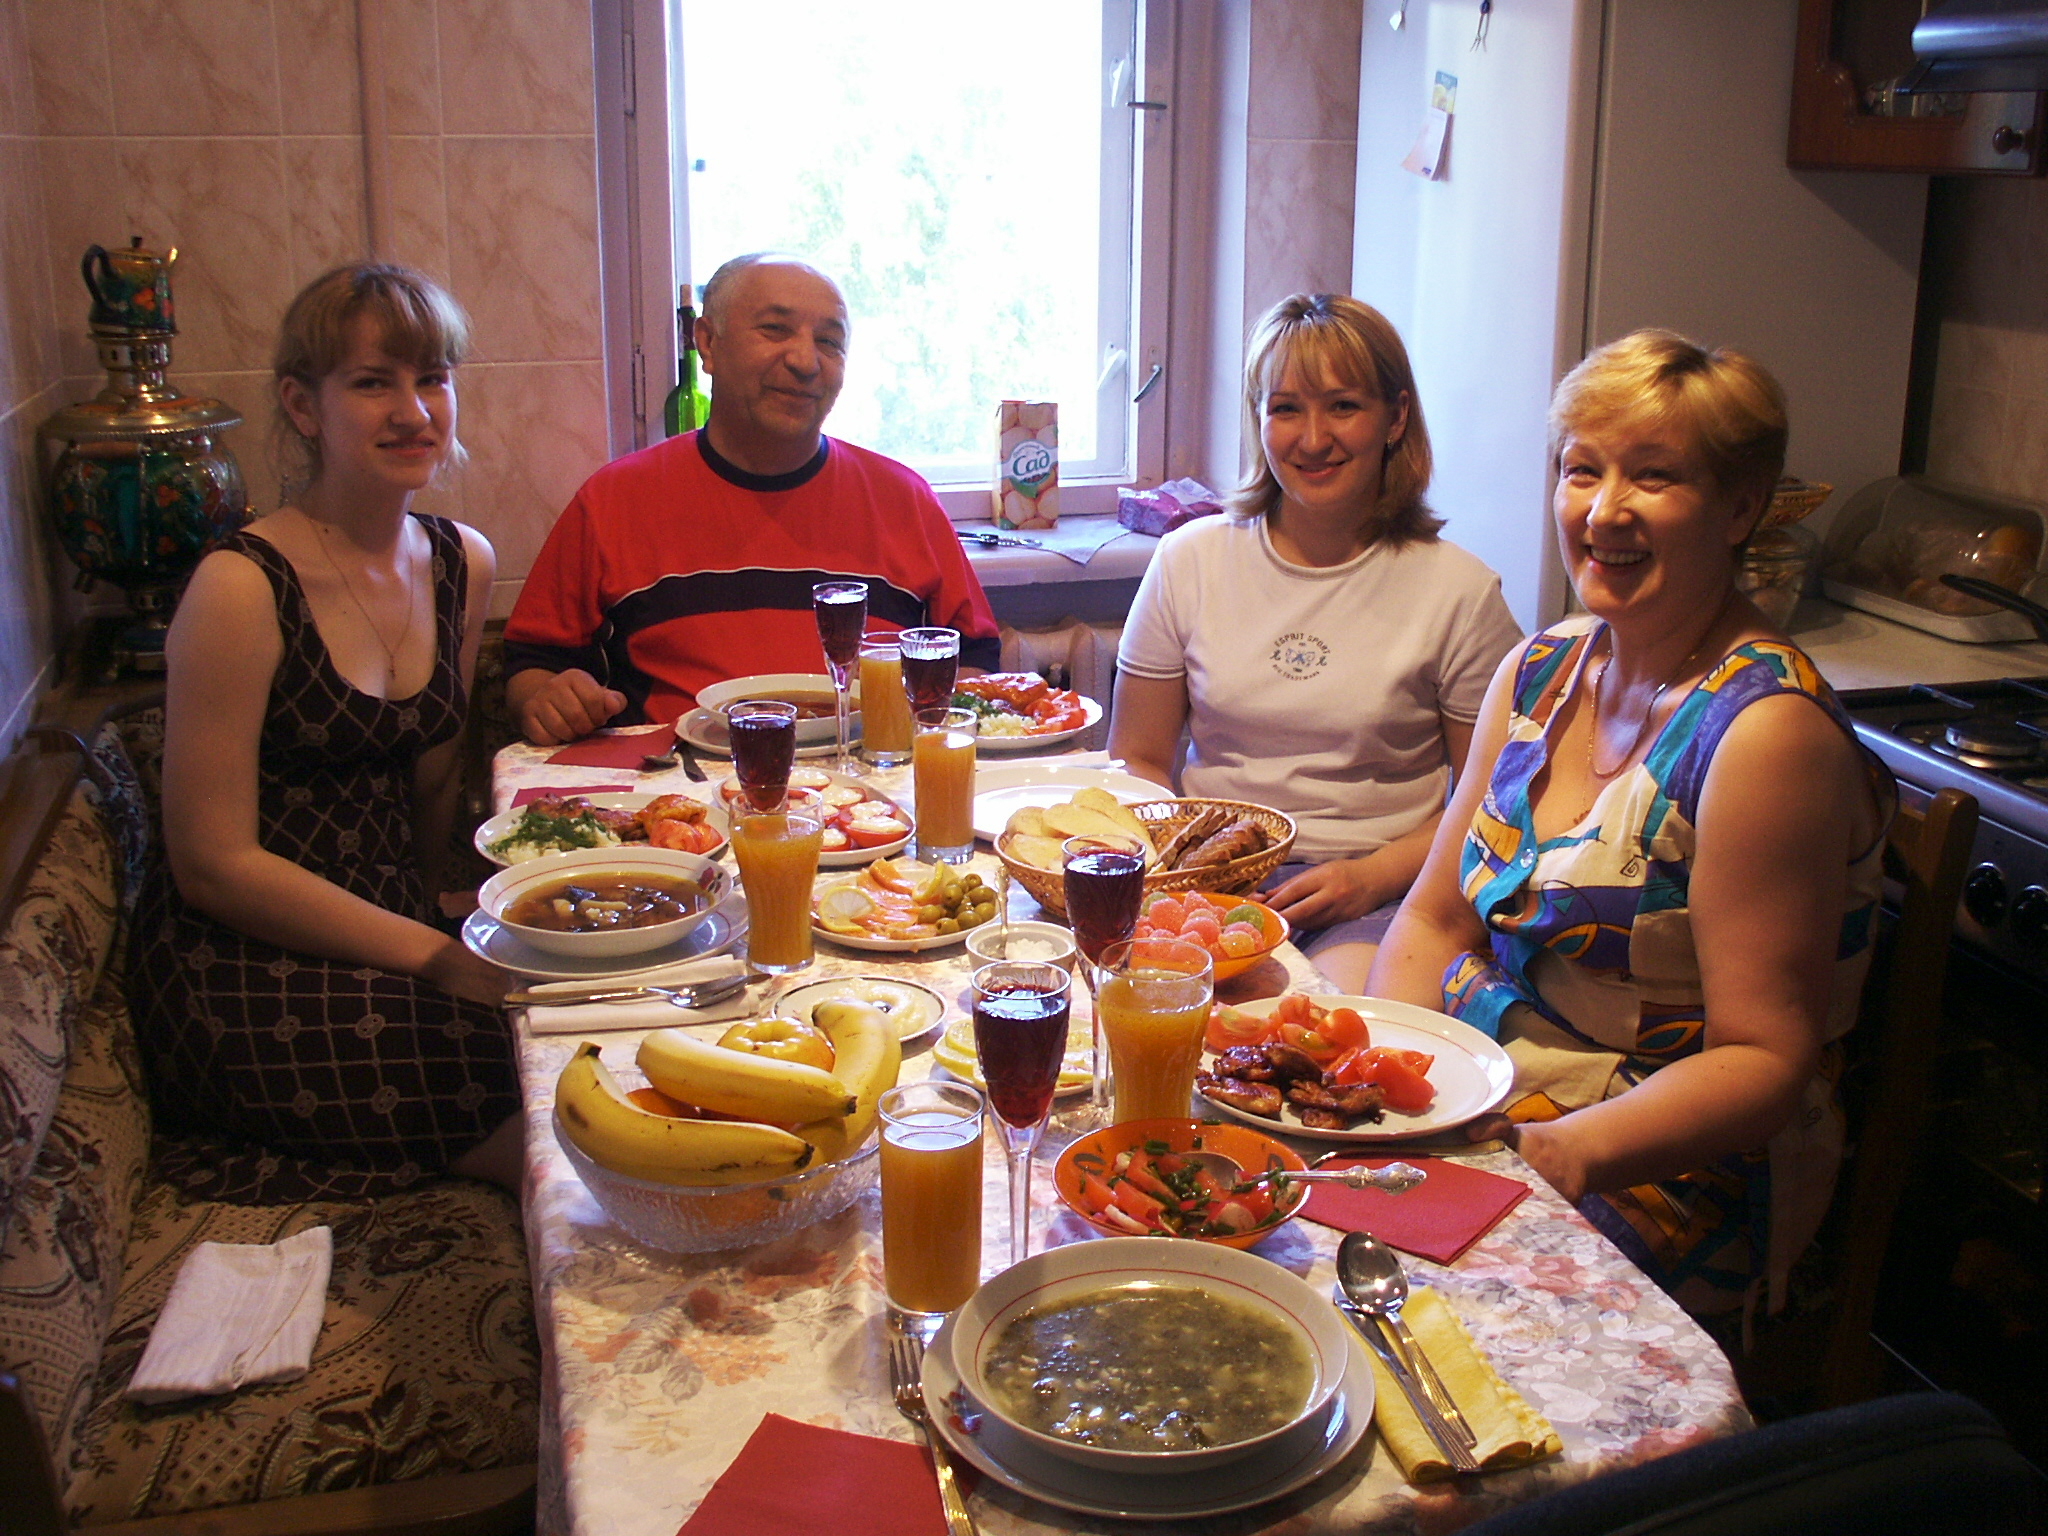 host family A host family receives help from an au pair from another country with childcare and light housework for a limited period of time.